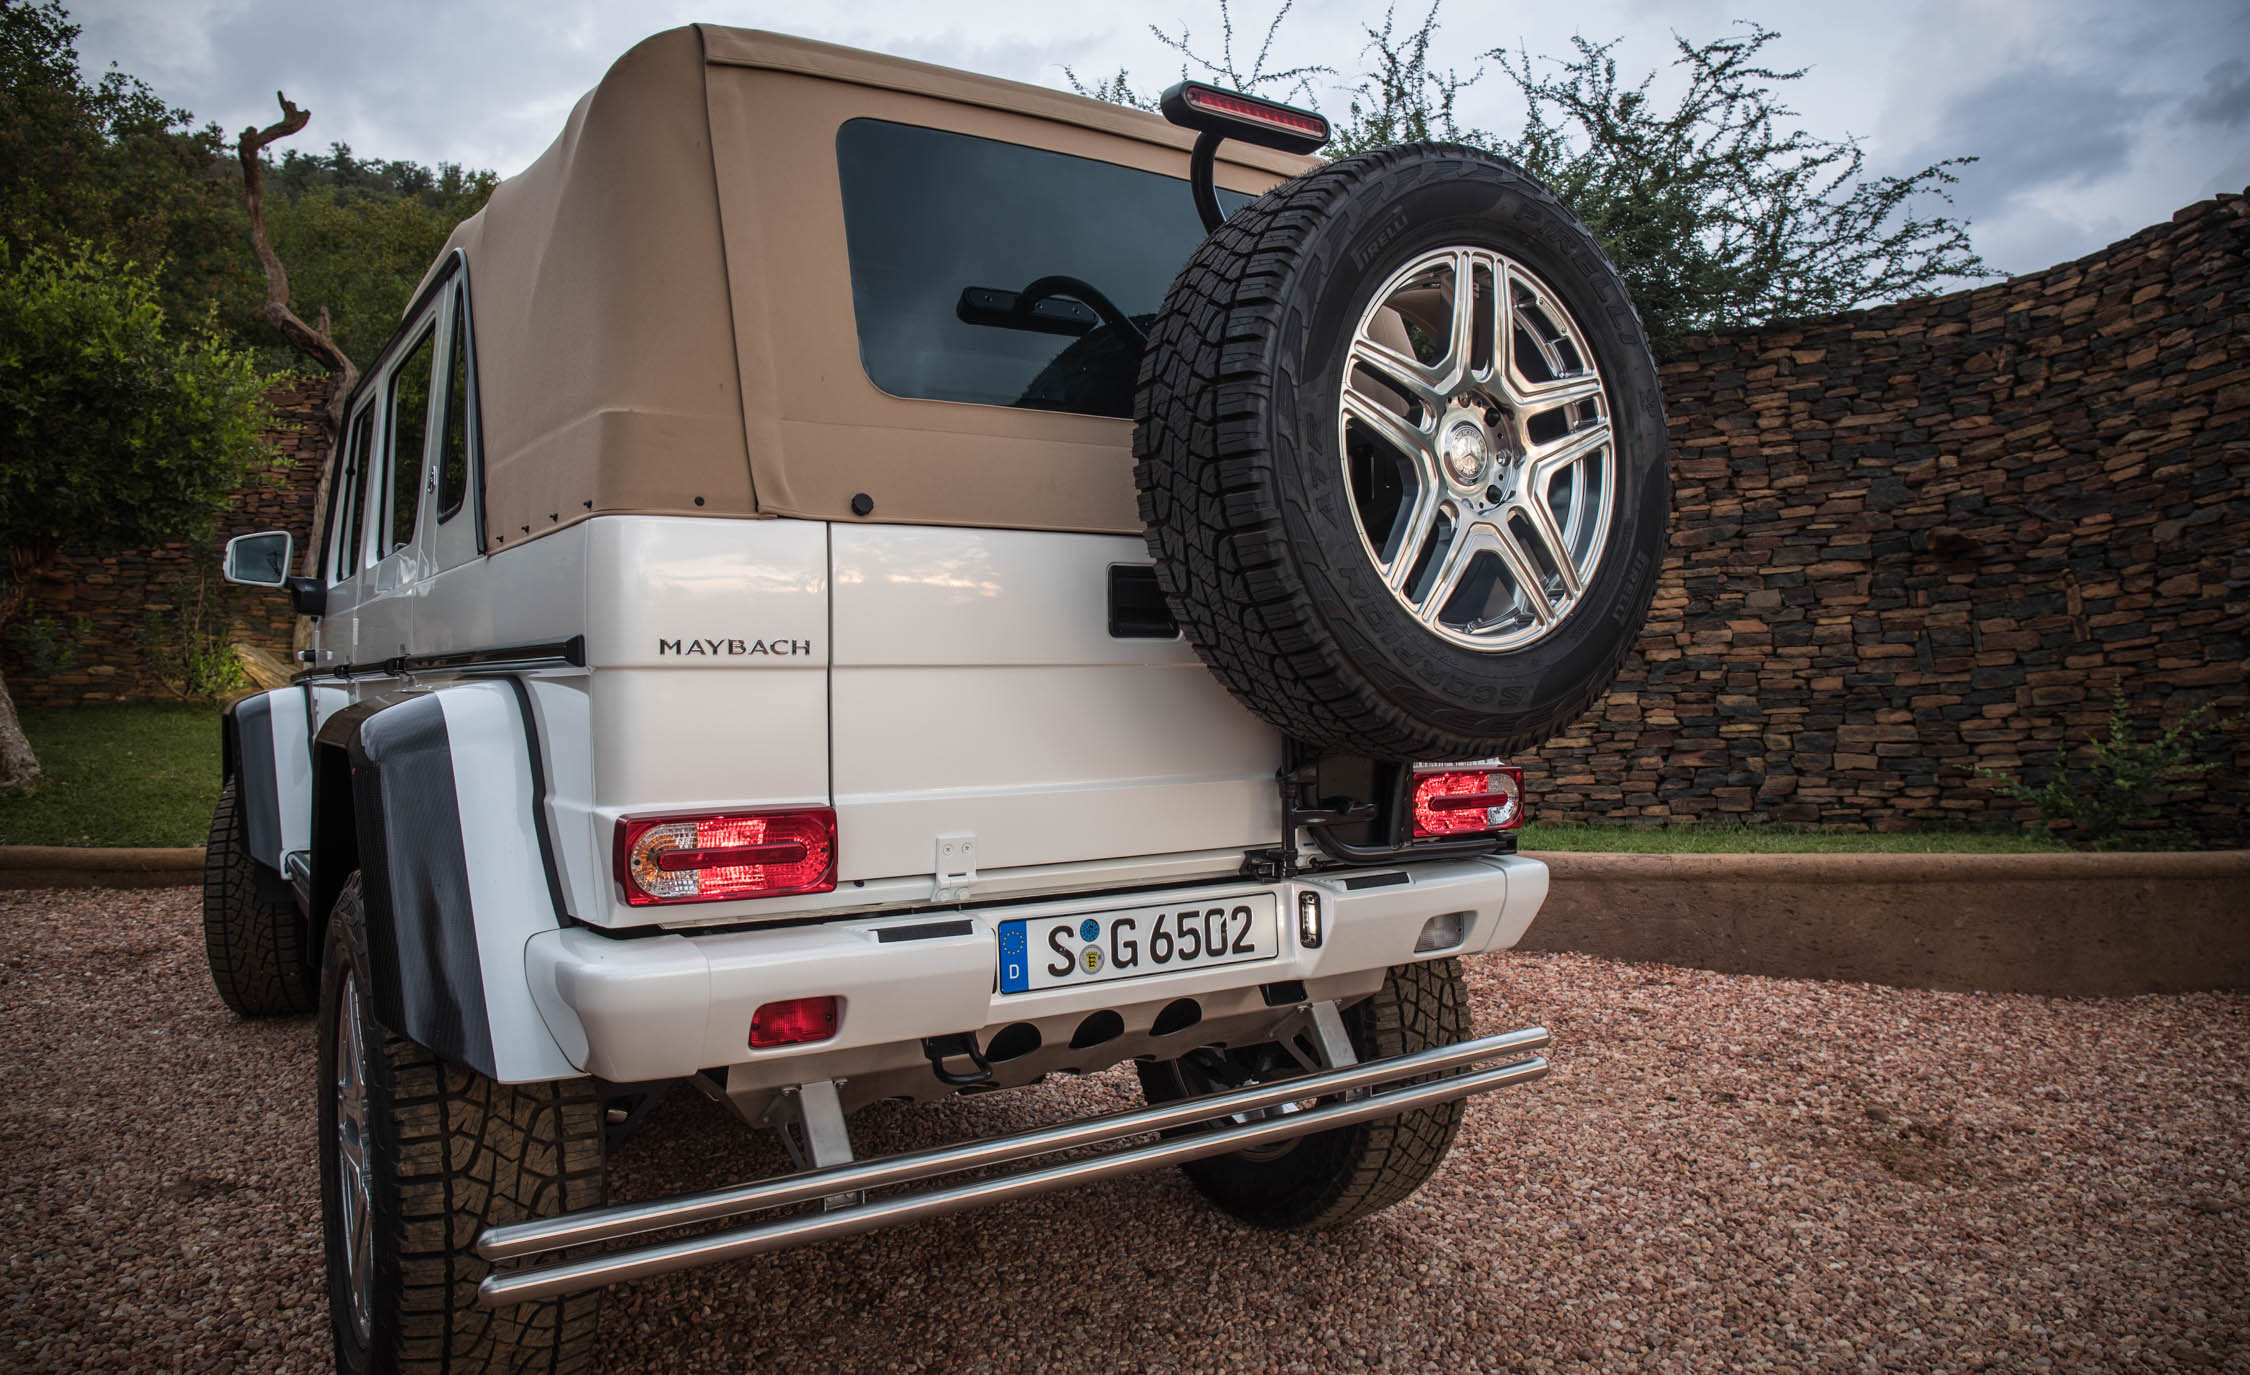 2018 Mercedes Maybach G650 Landaulet White Exterior Rear Roof Close (Photo 50 of 52)